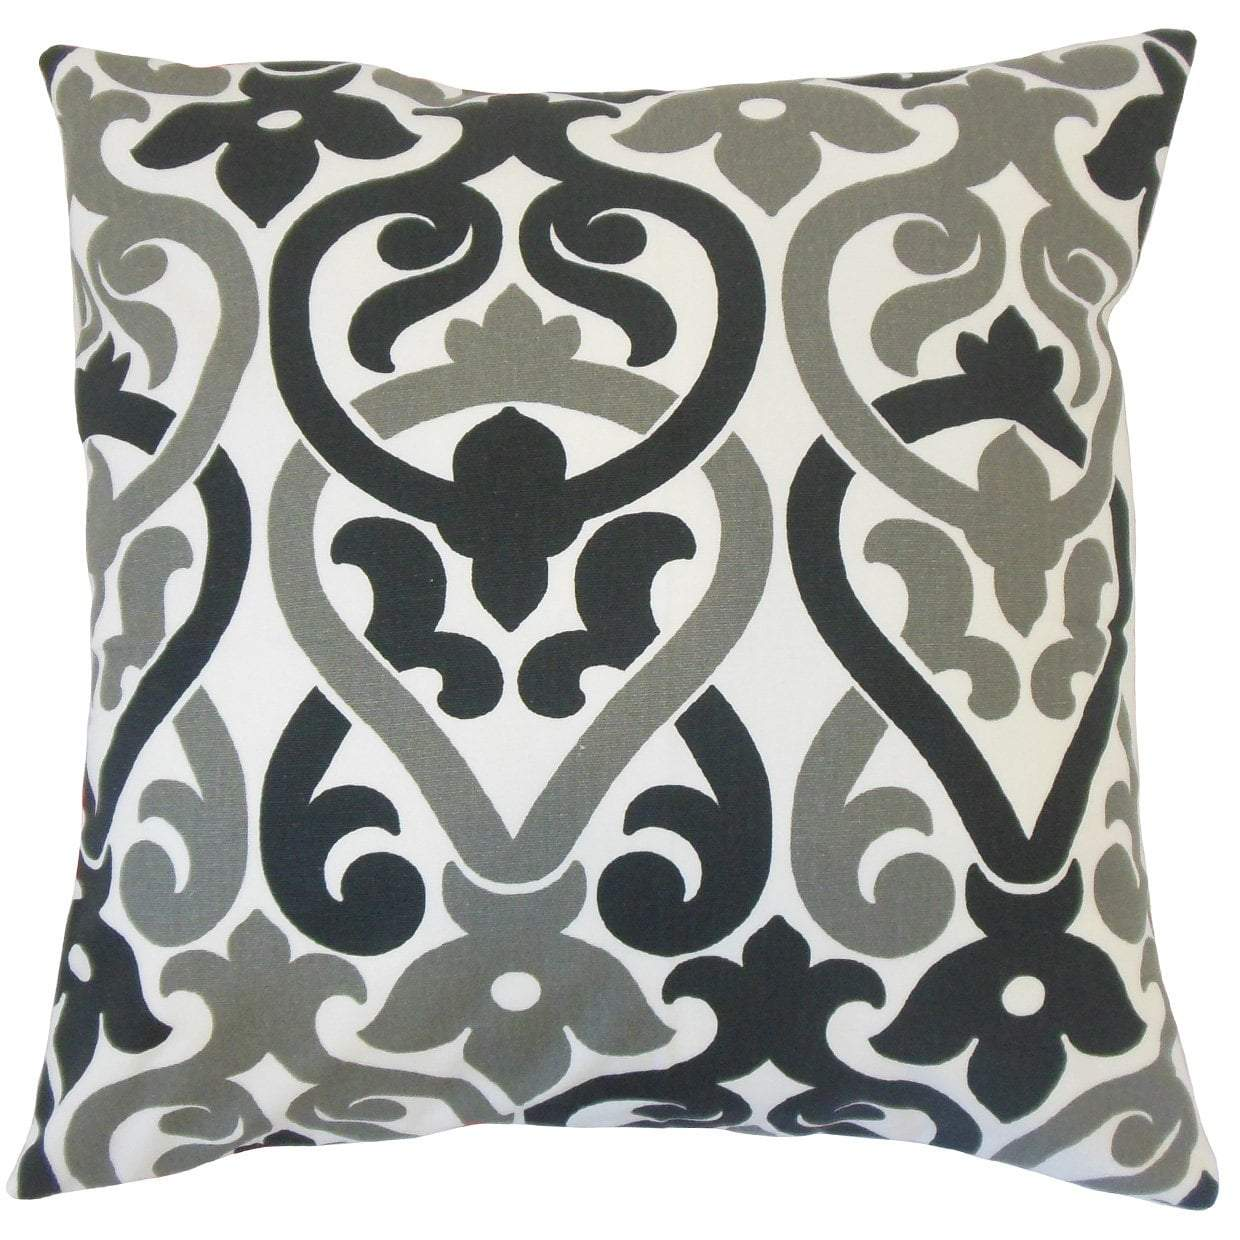 Nieto Throw Pillow Cover